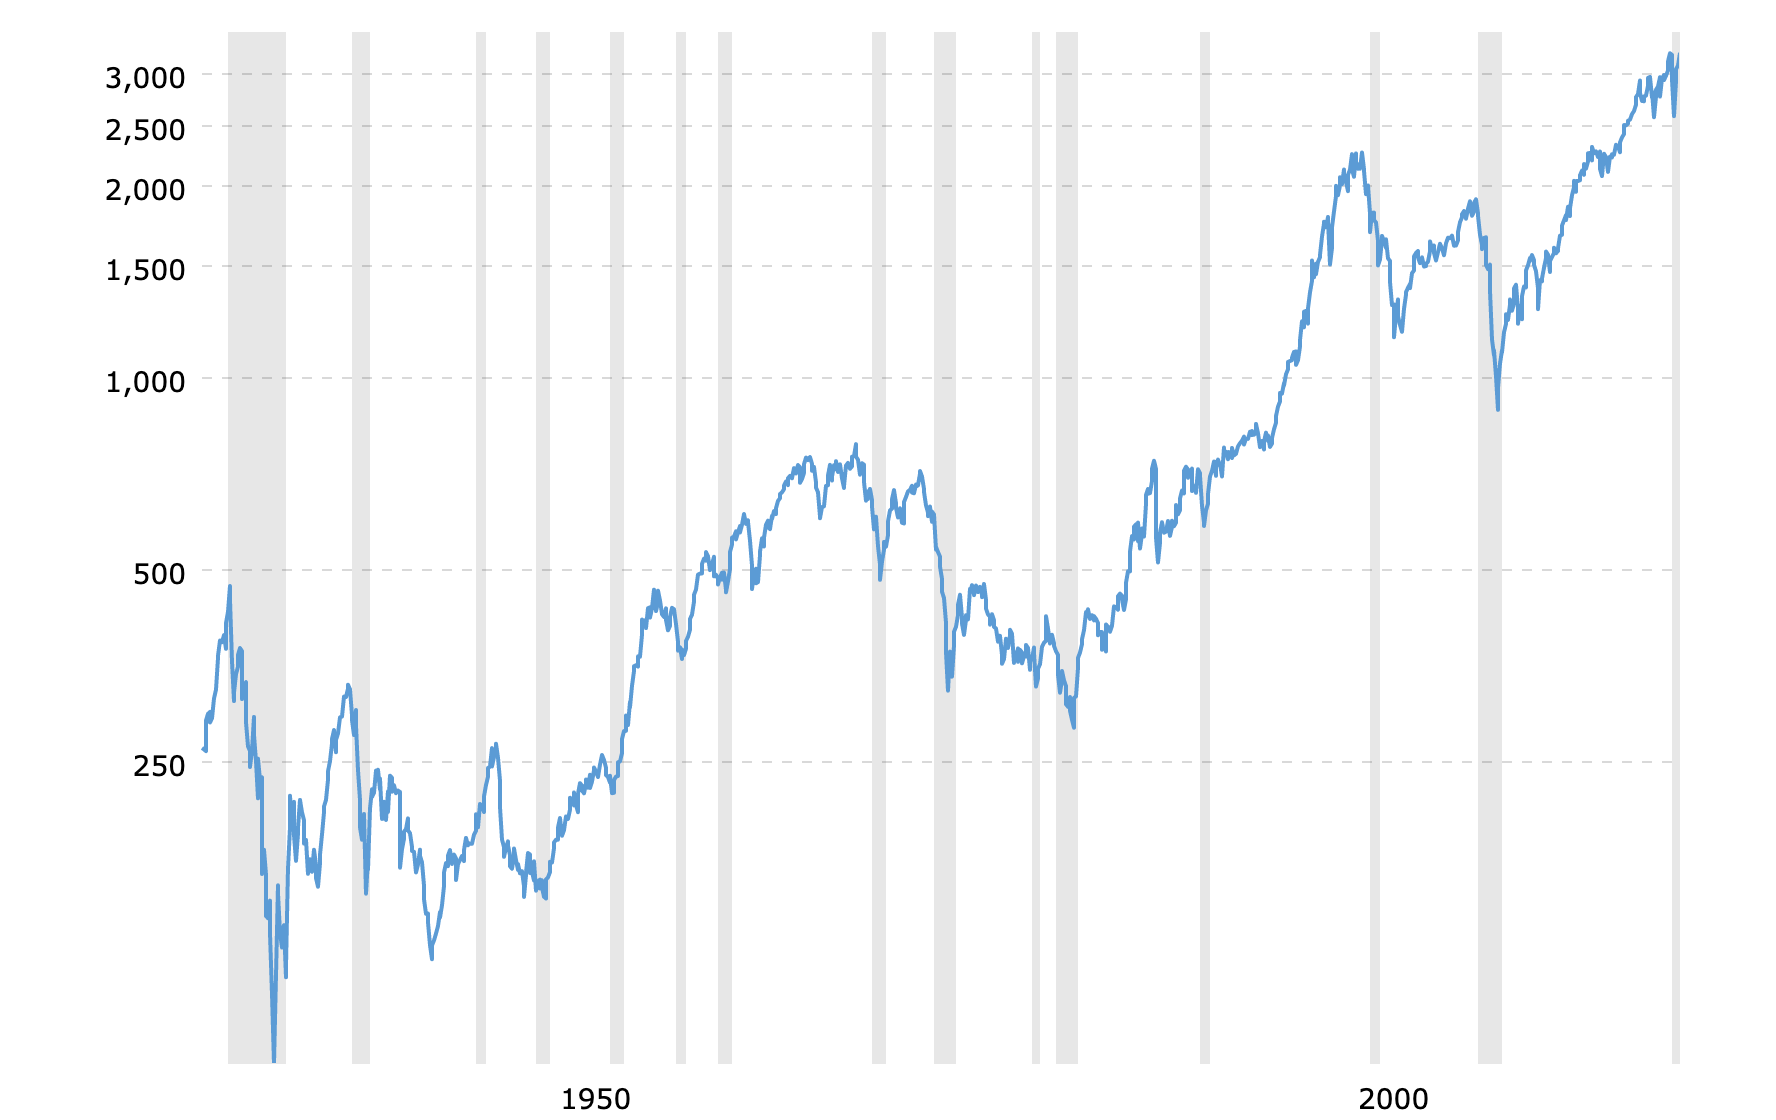 S&P 500 Index - 90 Year Historical Chart